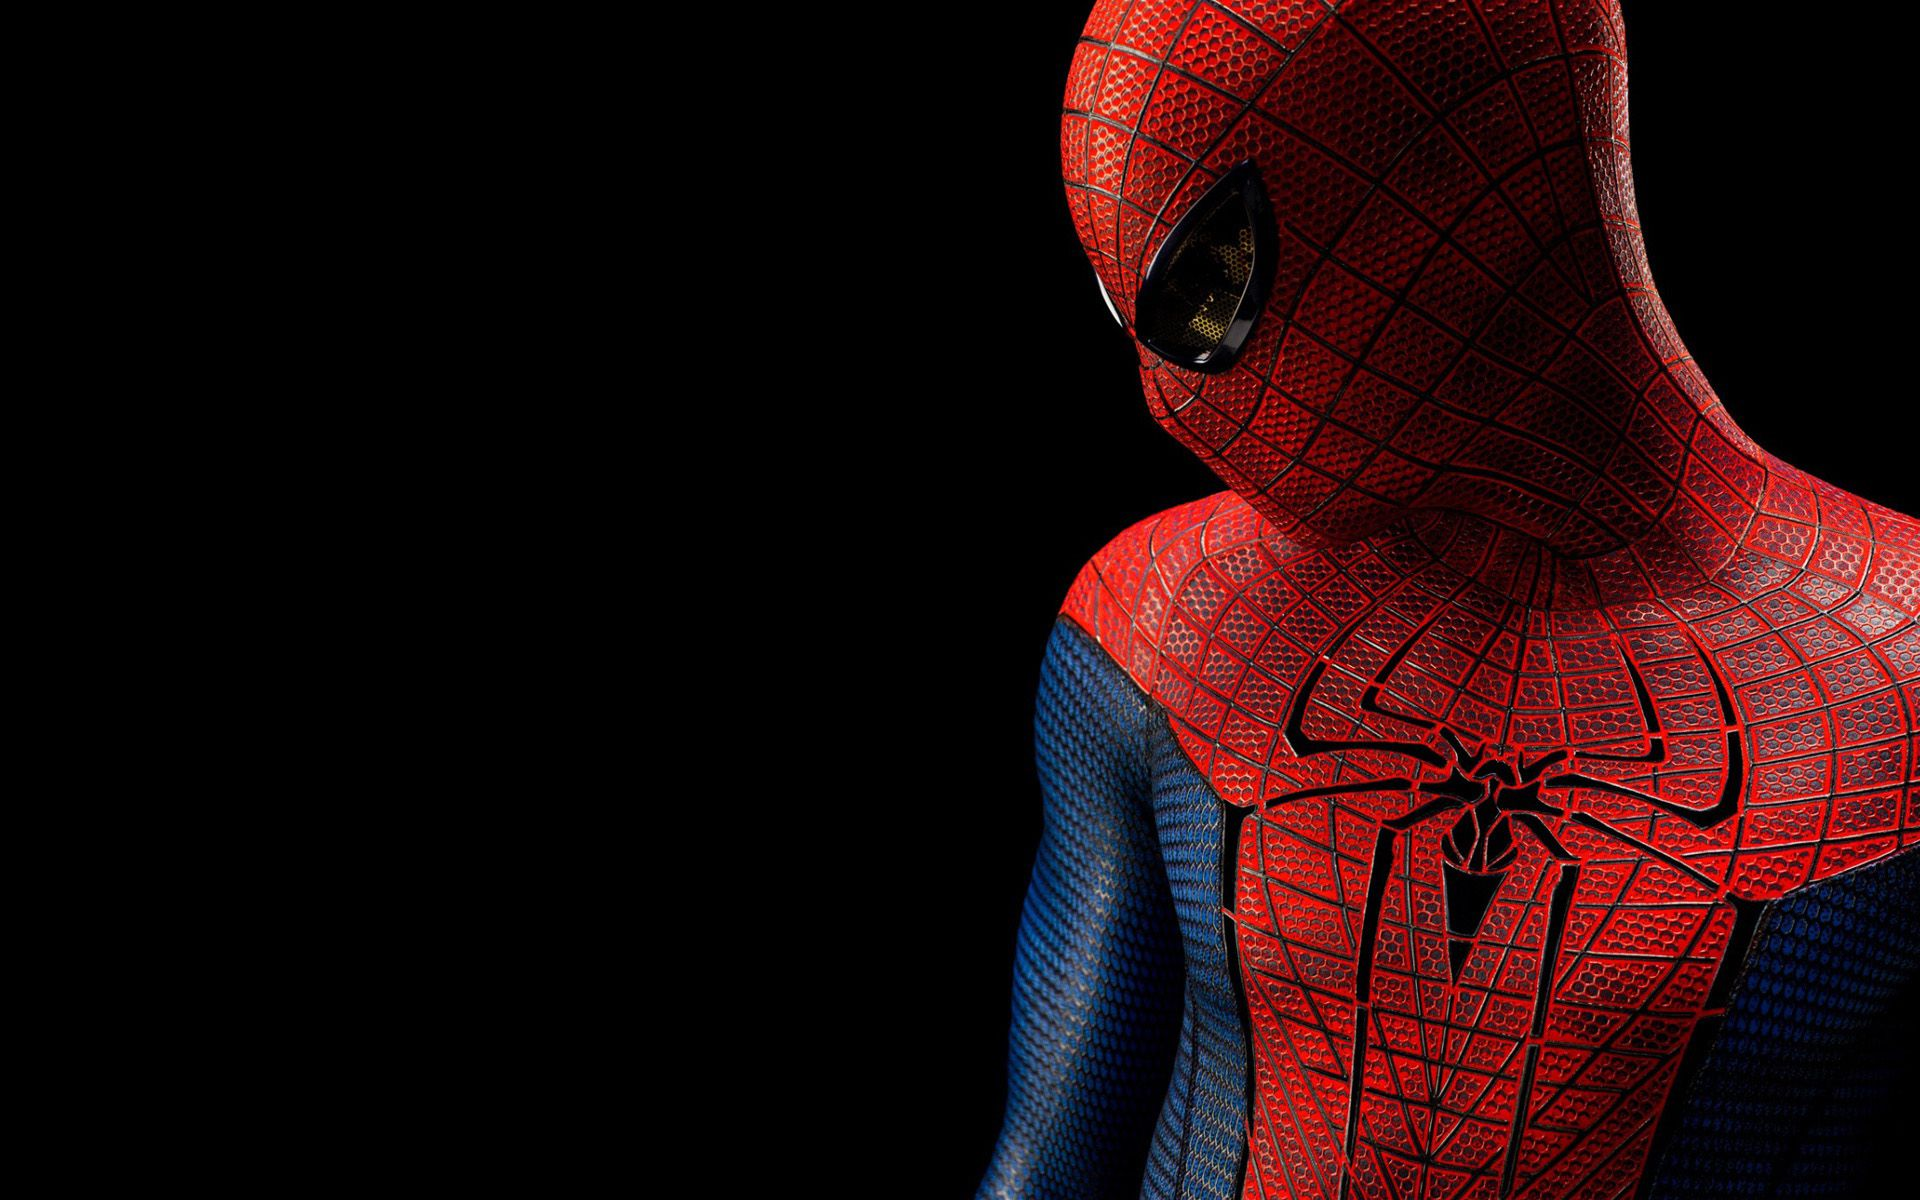 the amazing spider-man movie wallpaper | marvel wallpapers